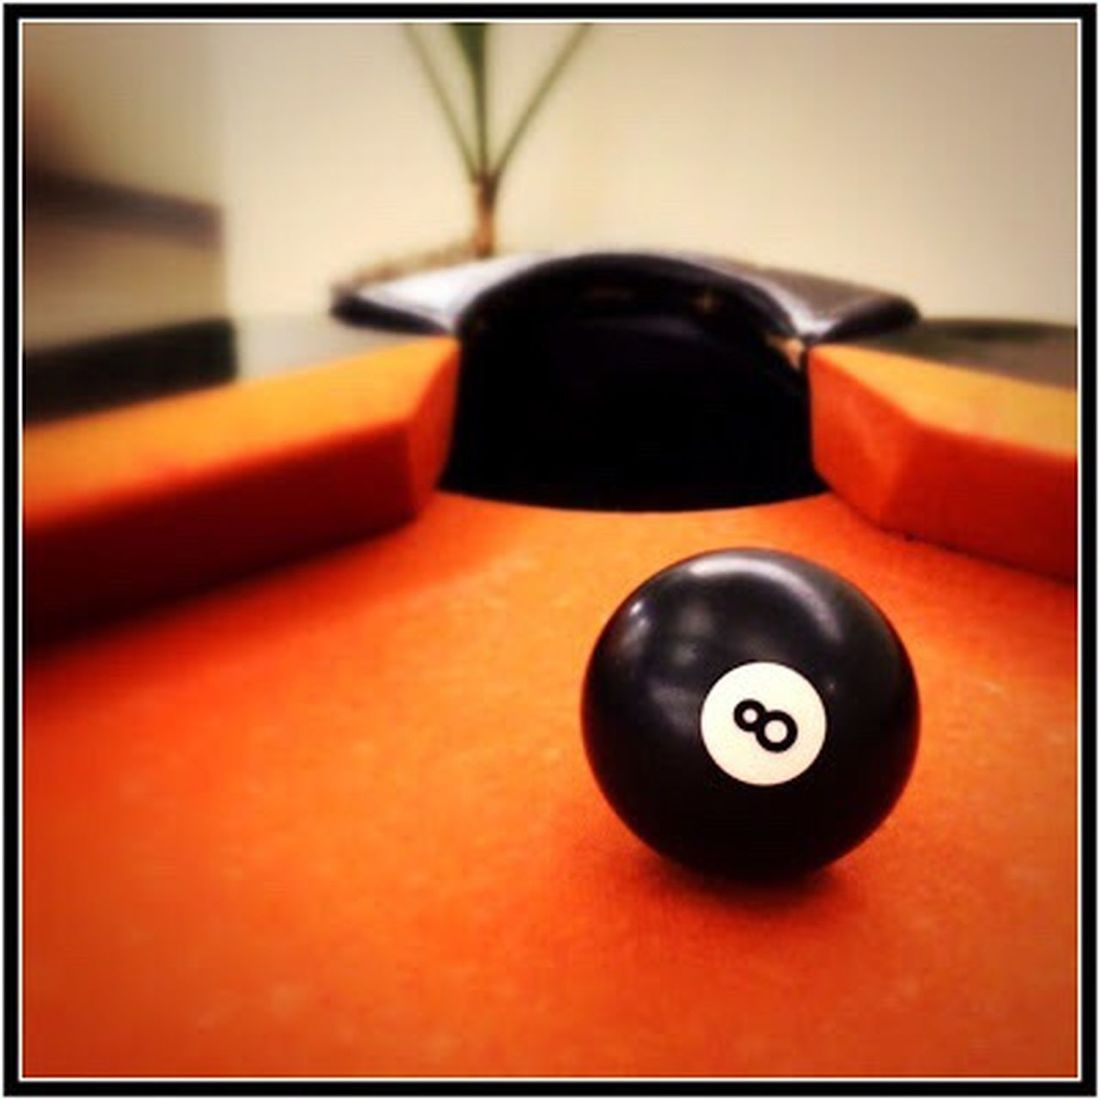 Eight ball, corner pocket. Billiards Pool Eight Ball Pool Table Pool Tables Pool Table Love ;) RackEmUp Cue Billiard Ball Billiard Billiard Table Billiards Cue BilliardTable Billiard Pool Billiard Day Billiard Pro?